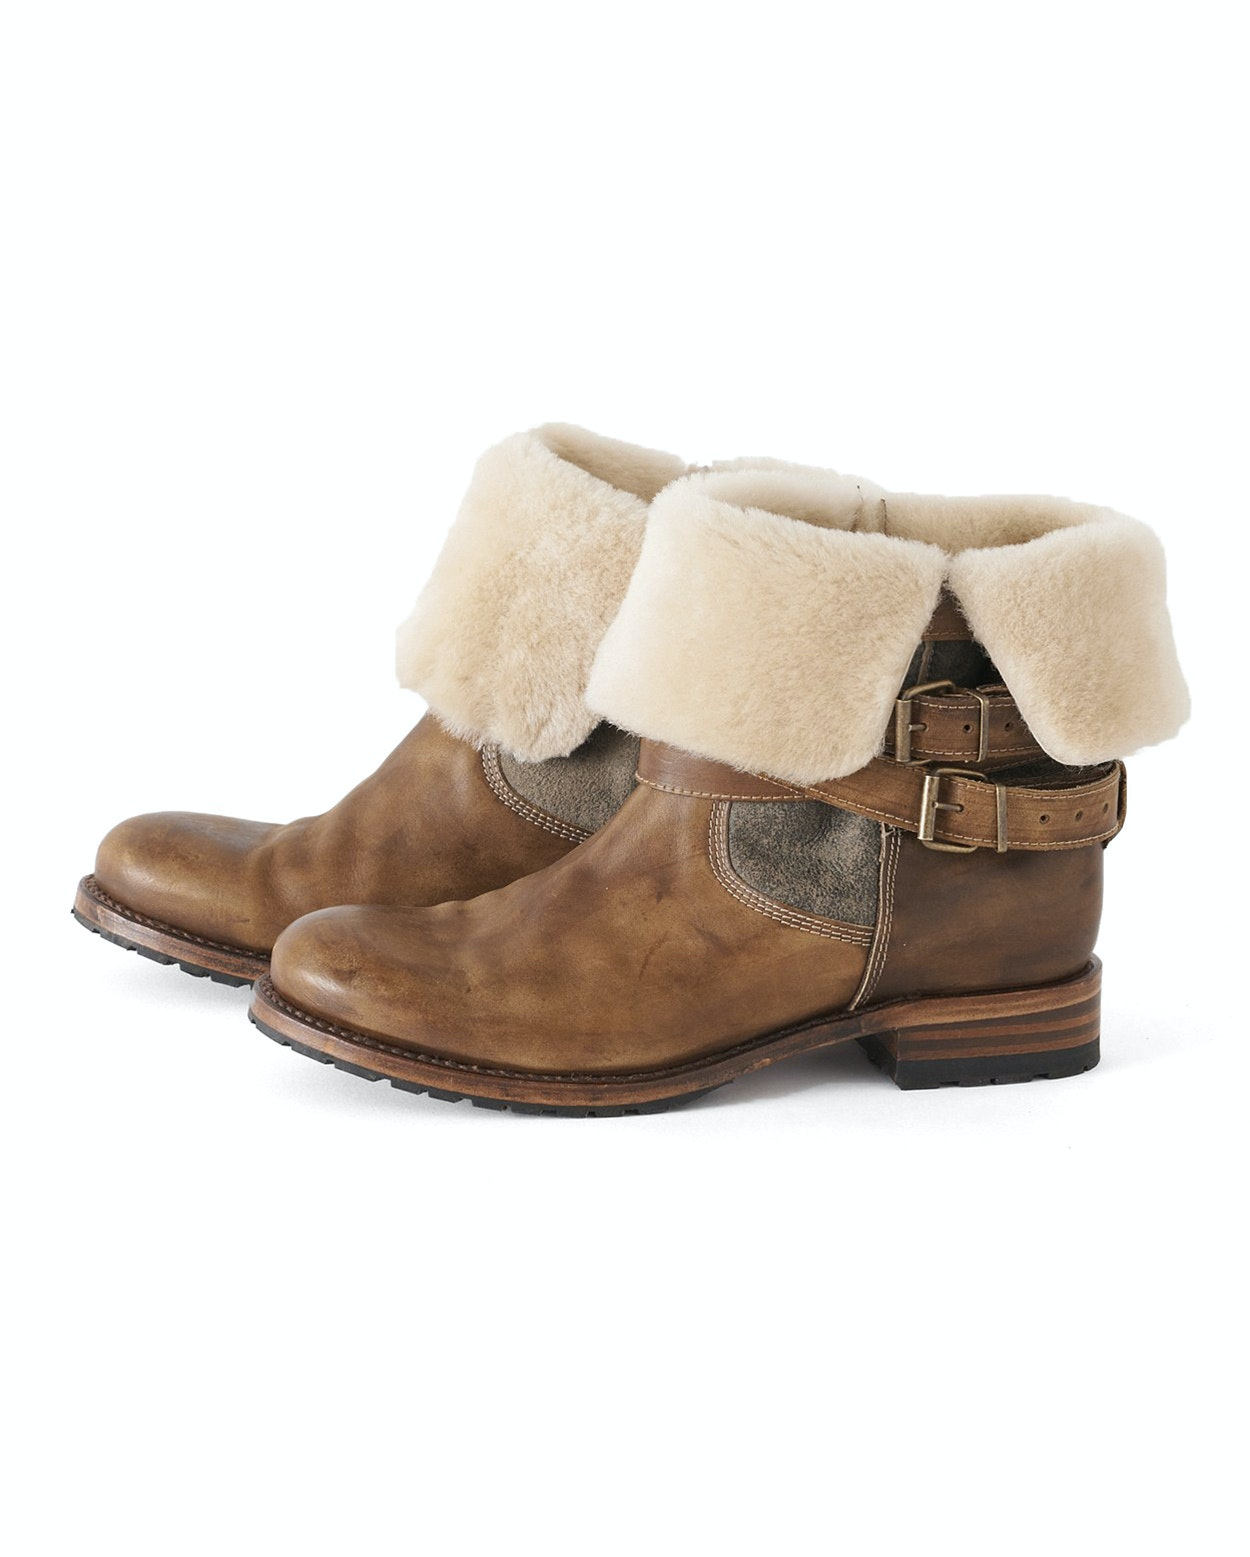 674301f1d65 Poetry - Shearling lined leather ankle boots